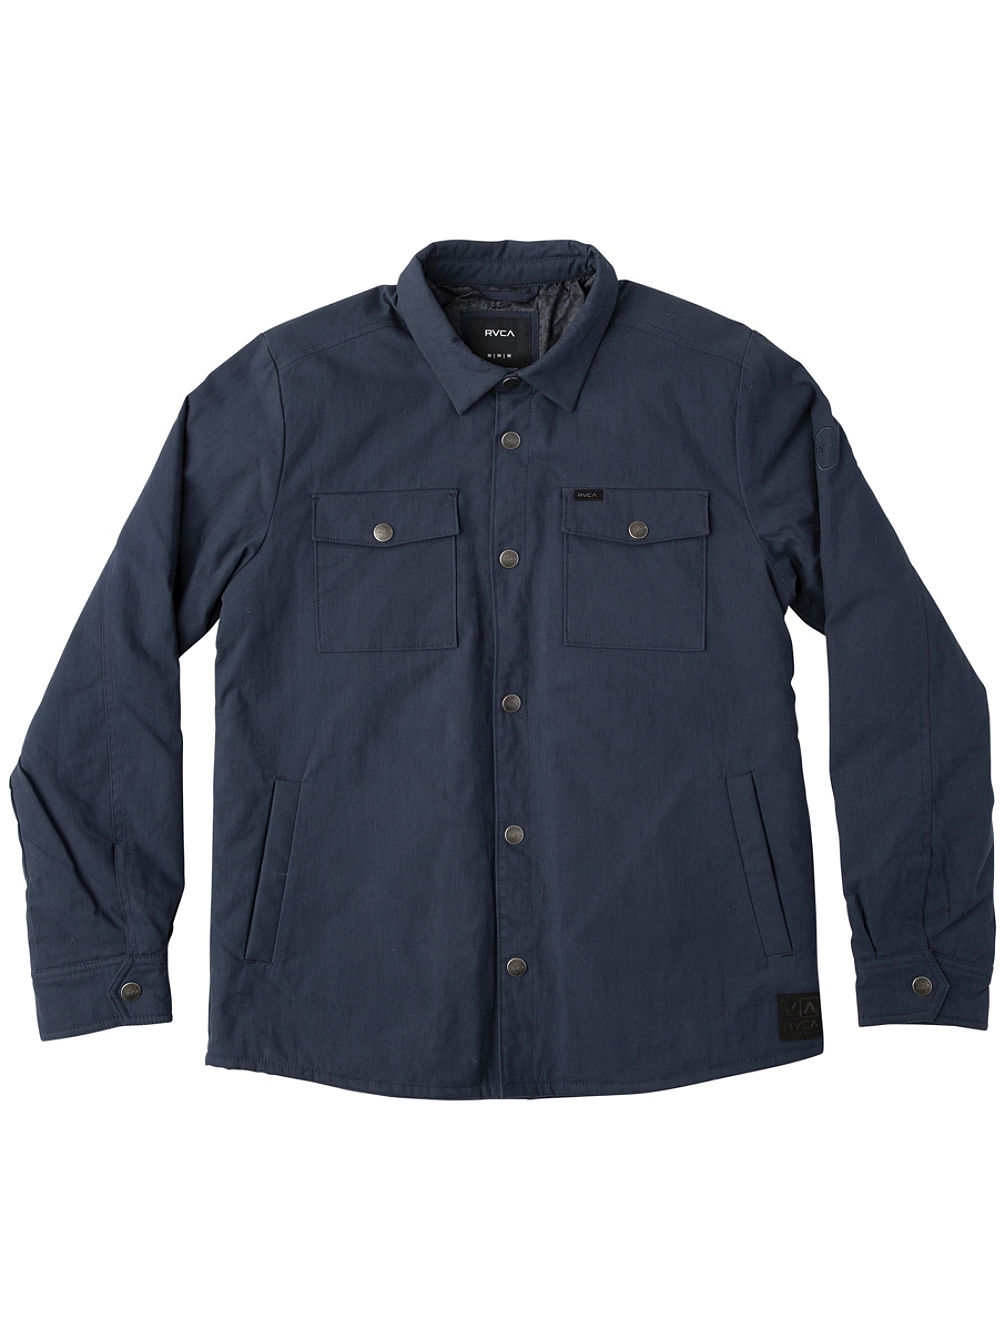 Officers Shirt Jacket